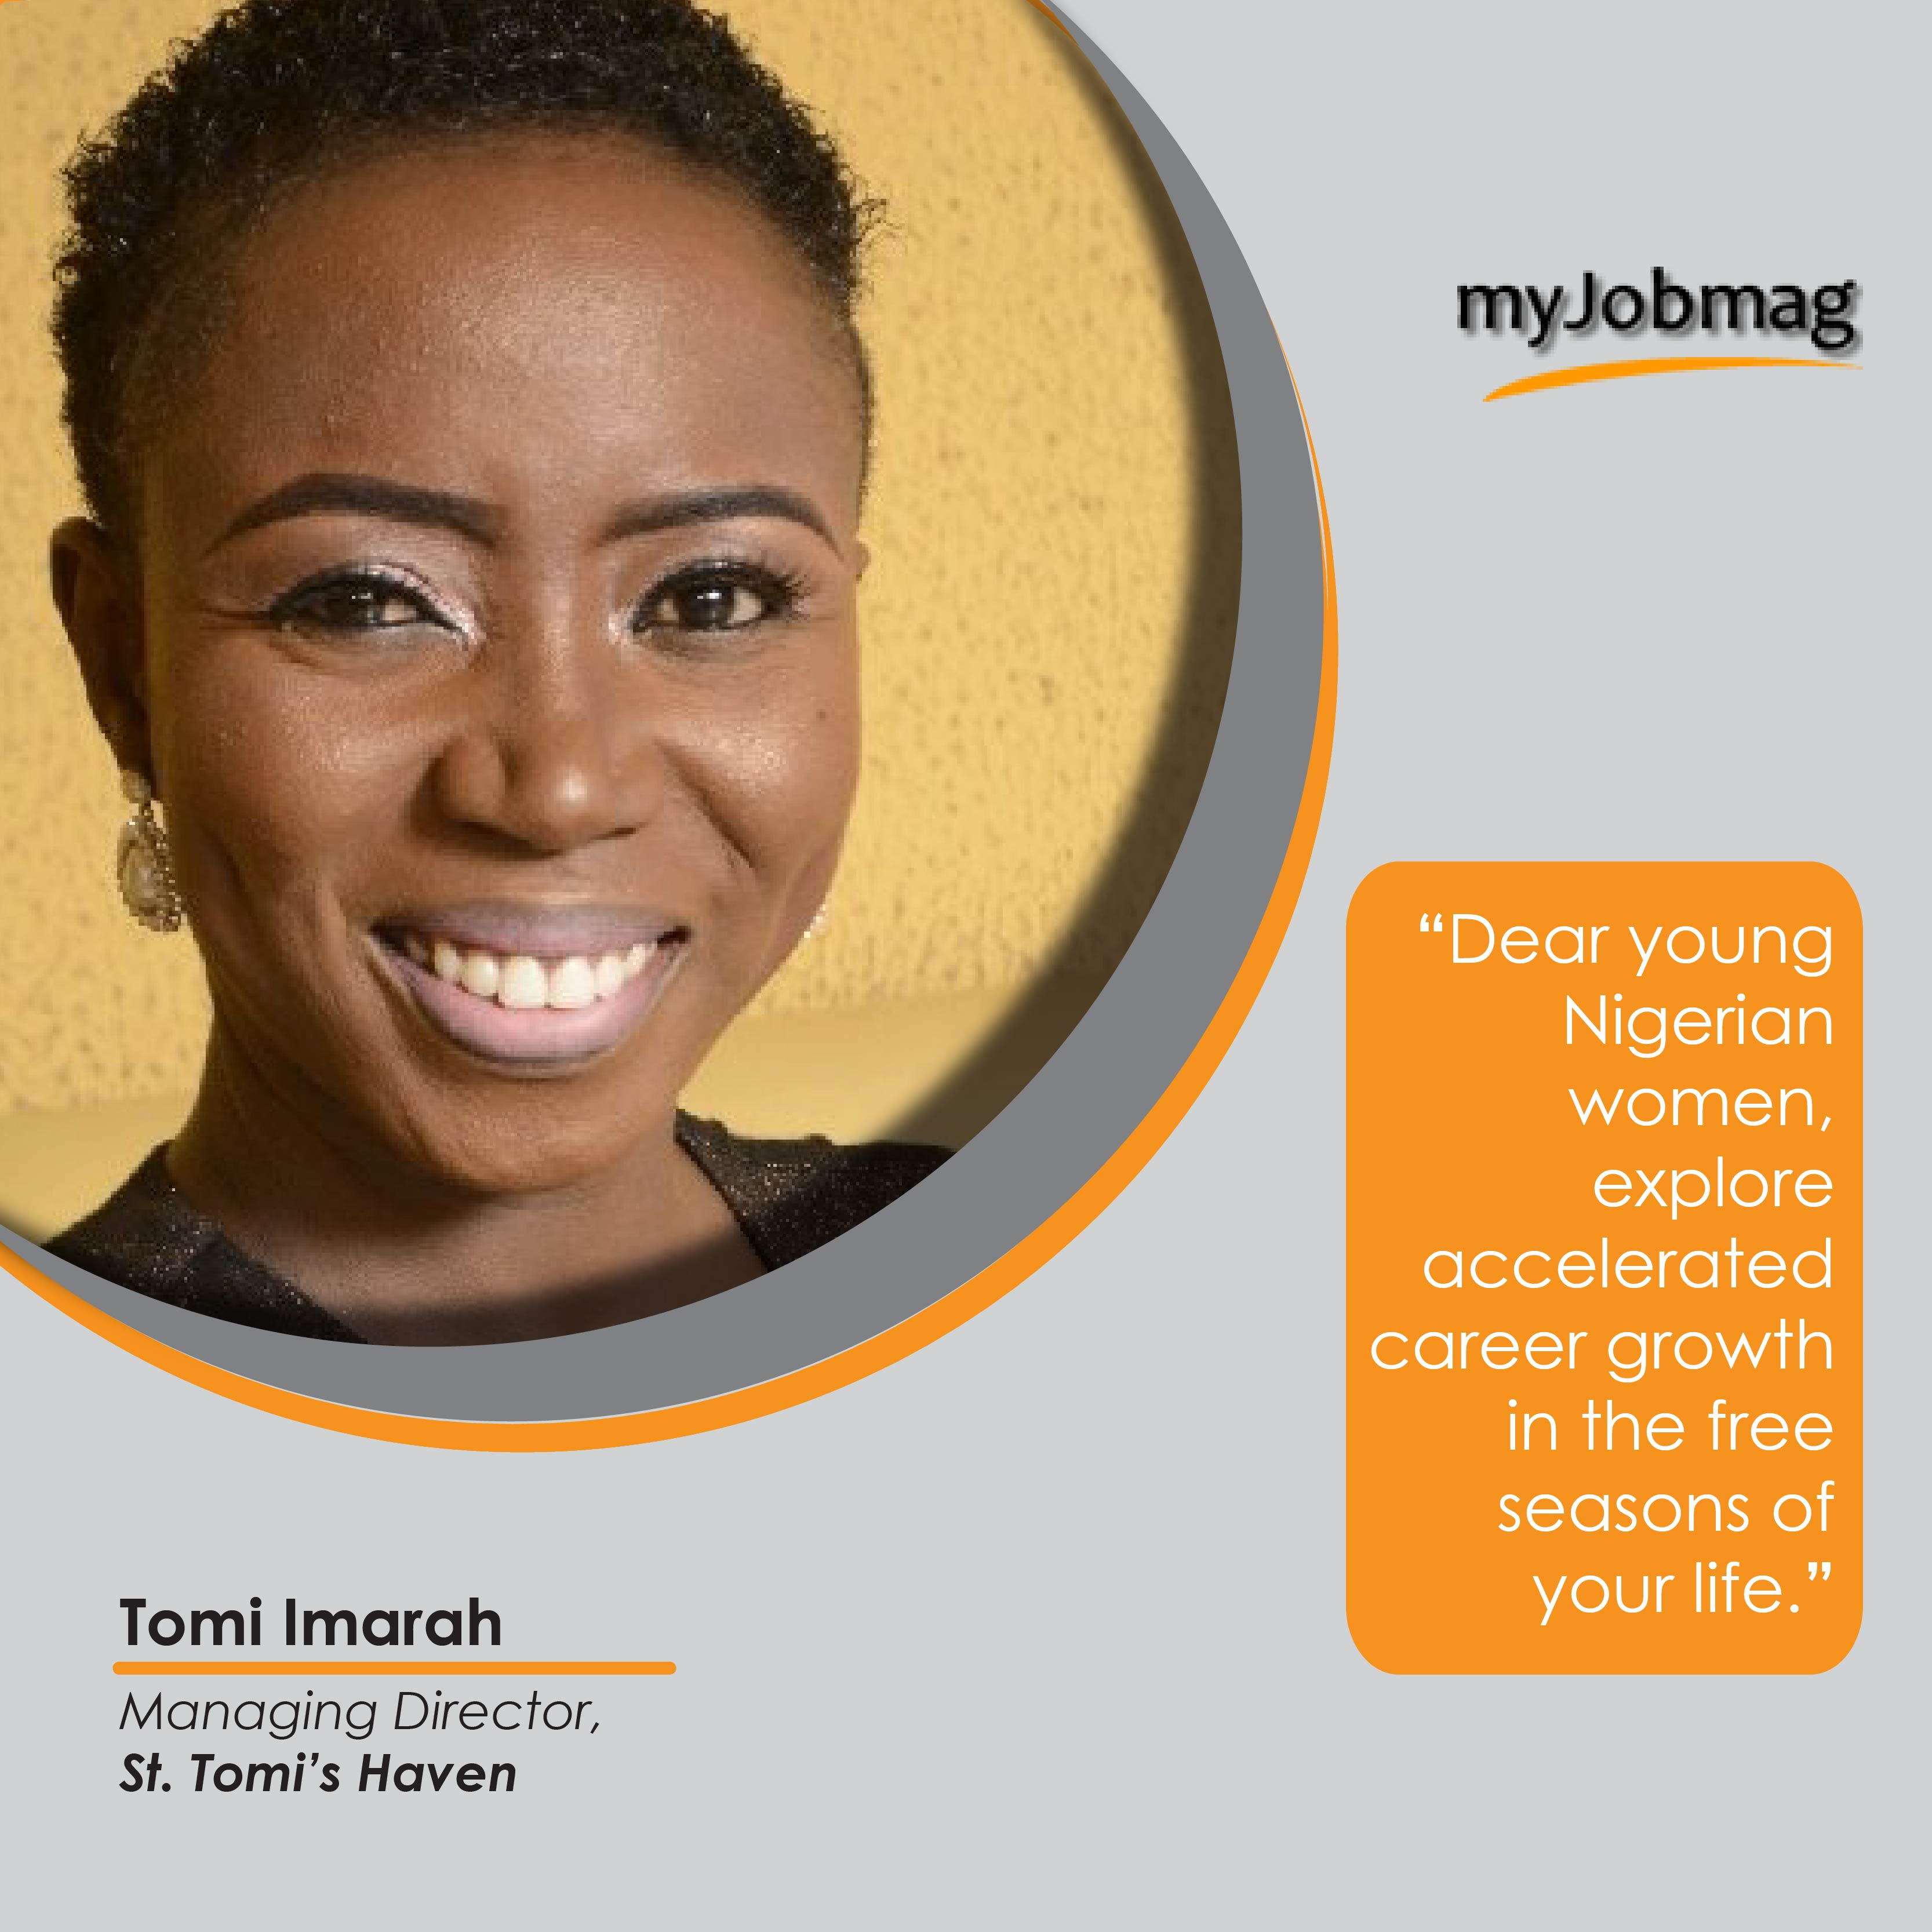 Tomi Imarah career advice MyJobMag